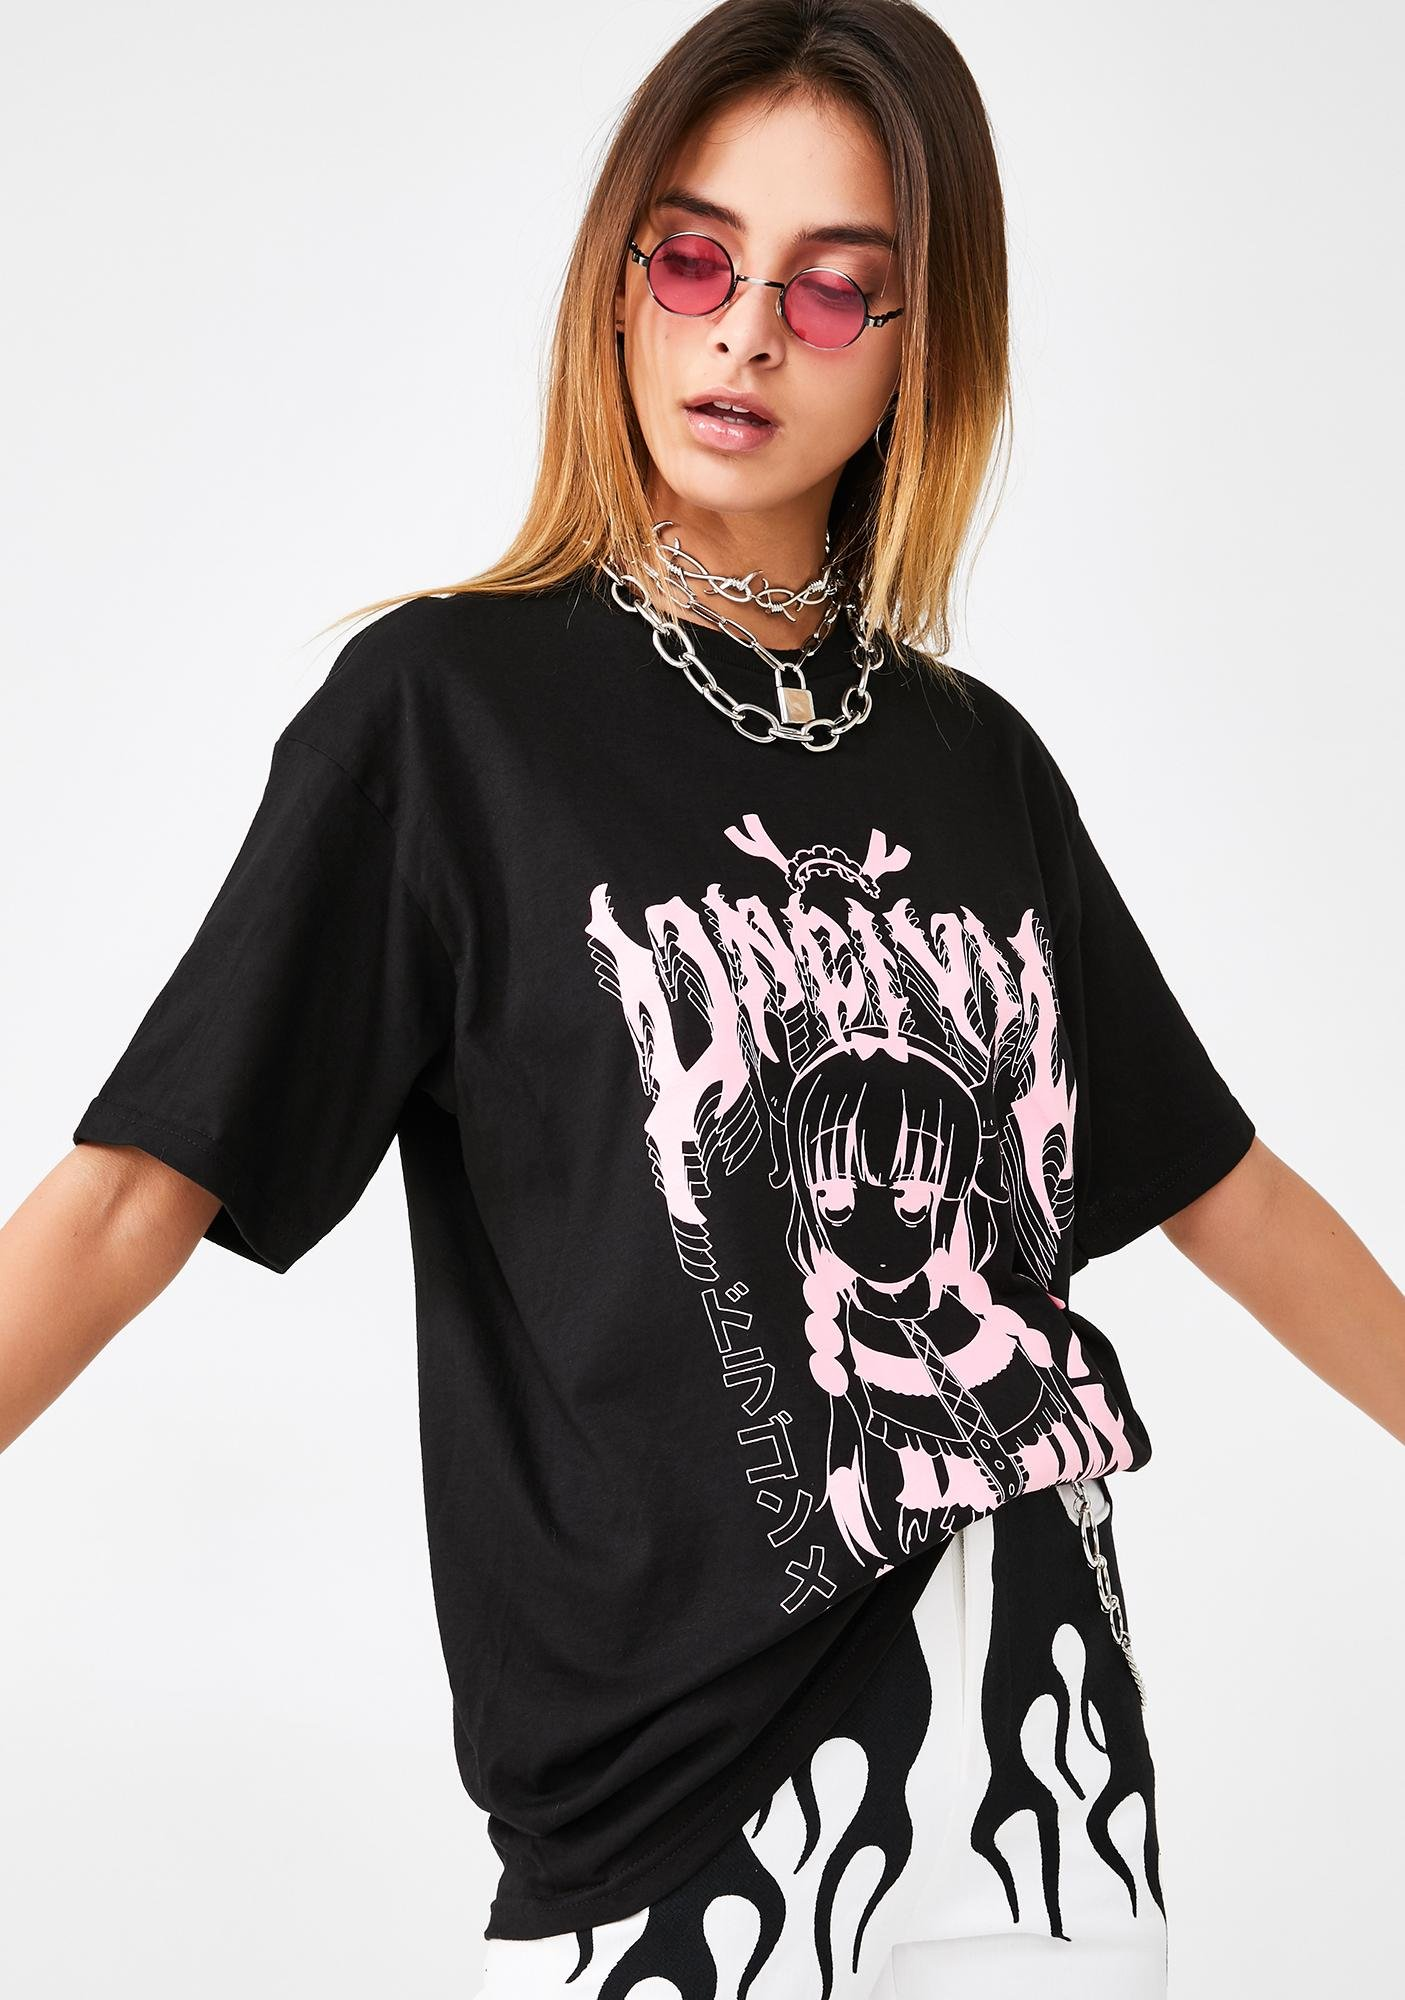 UNCIVIL XXX Kanna Gang Graphic Tee